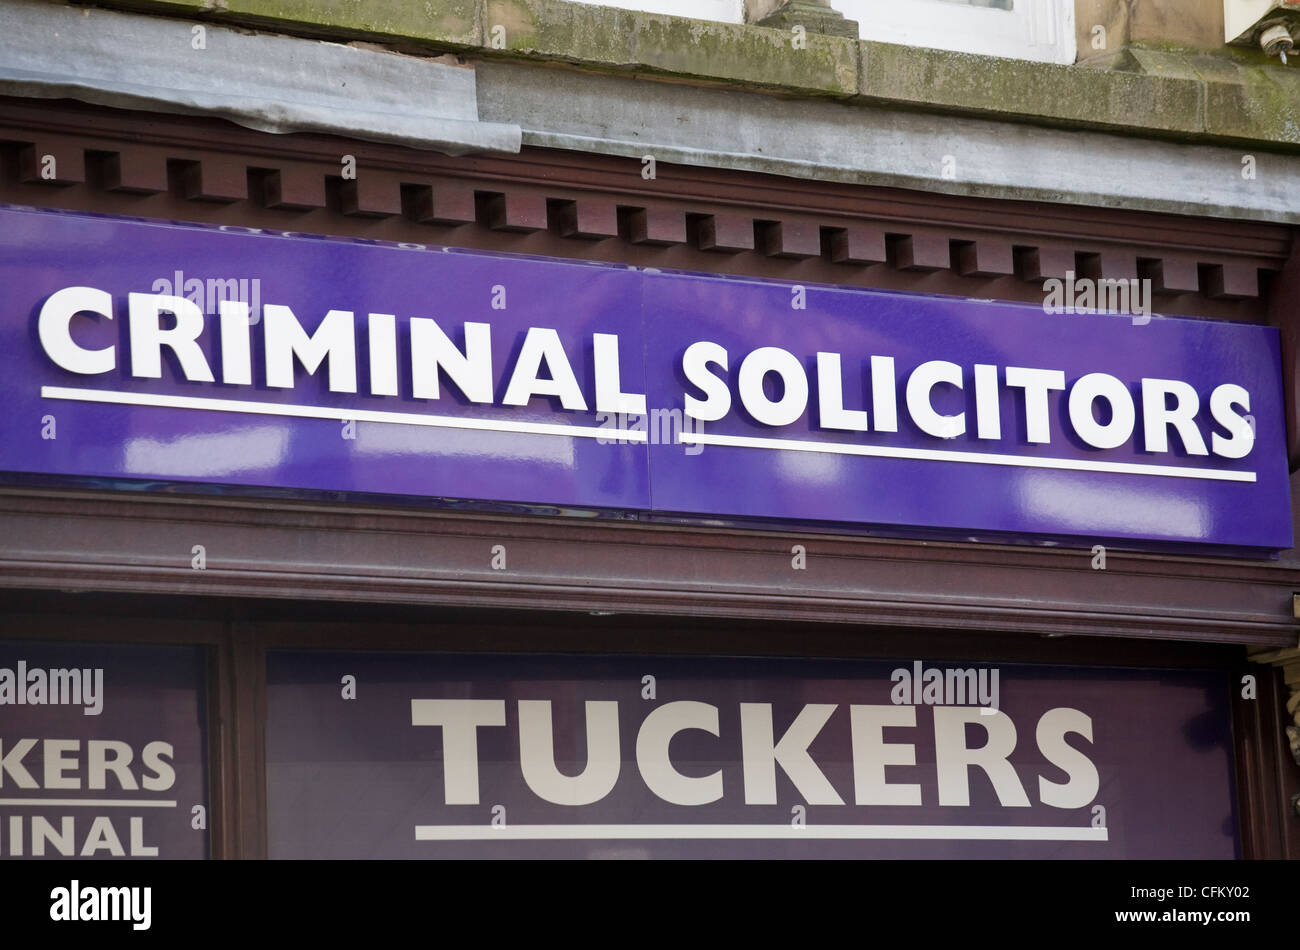 Solicitors funny humourous sign Bury England - Stock Image